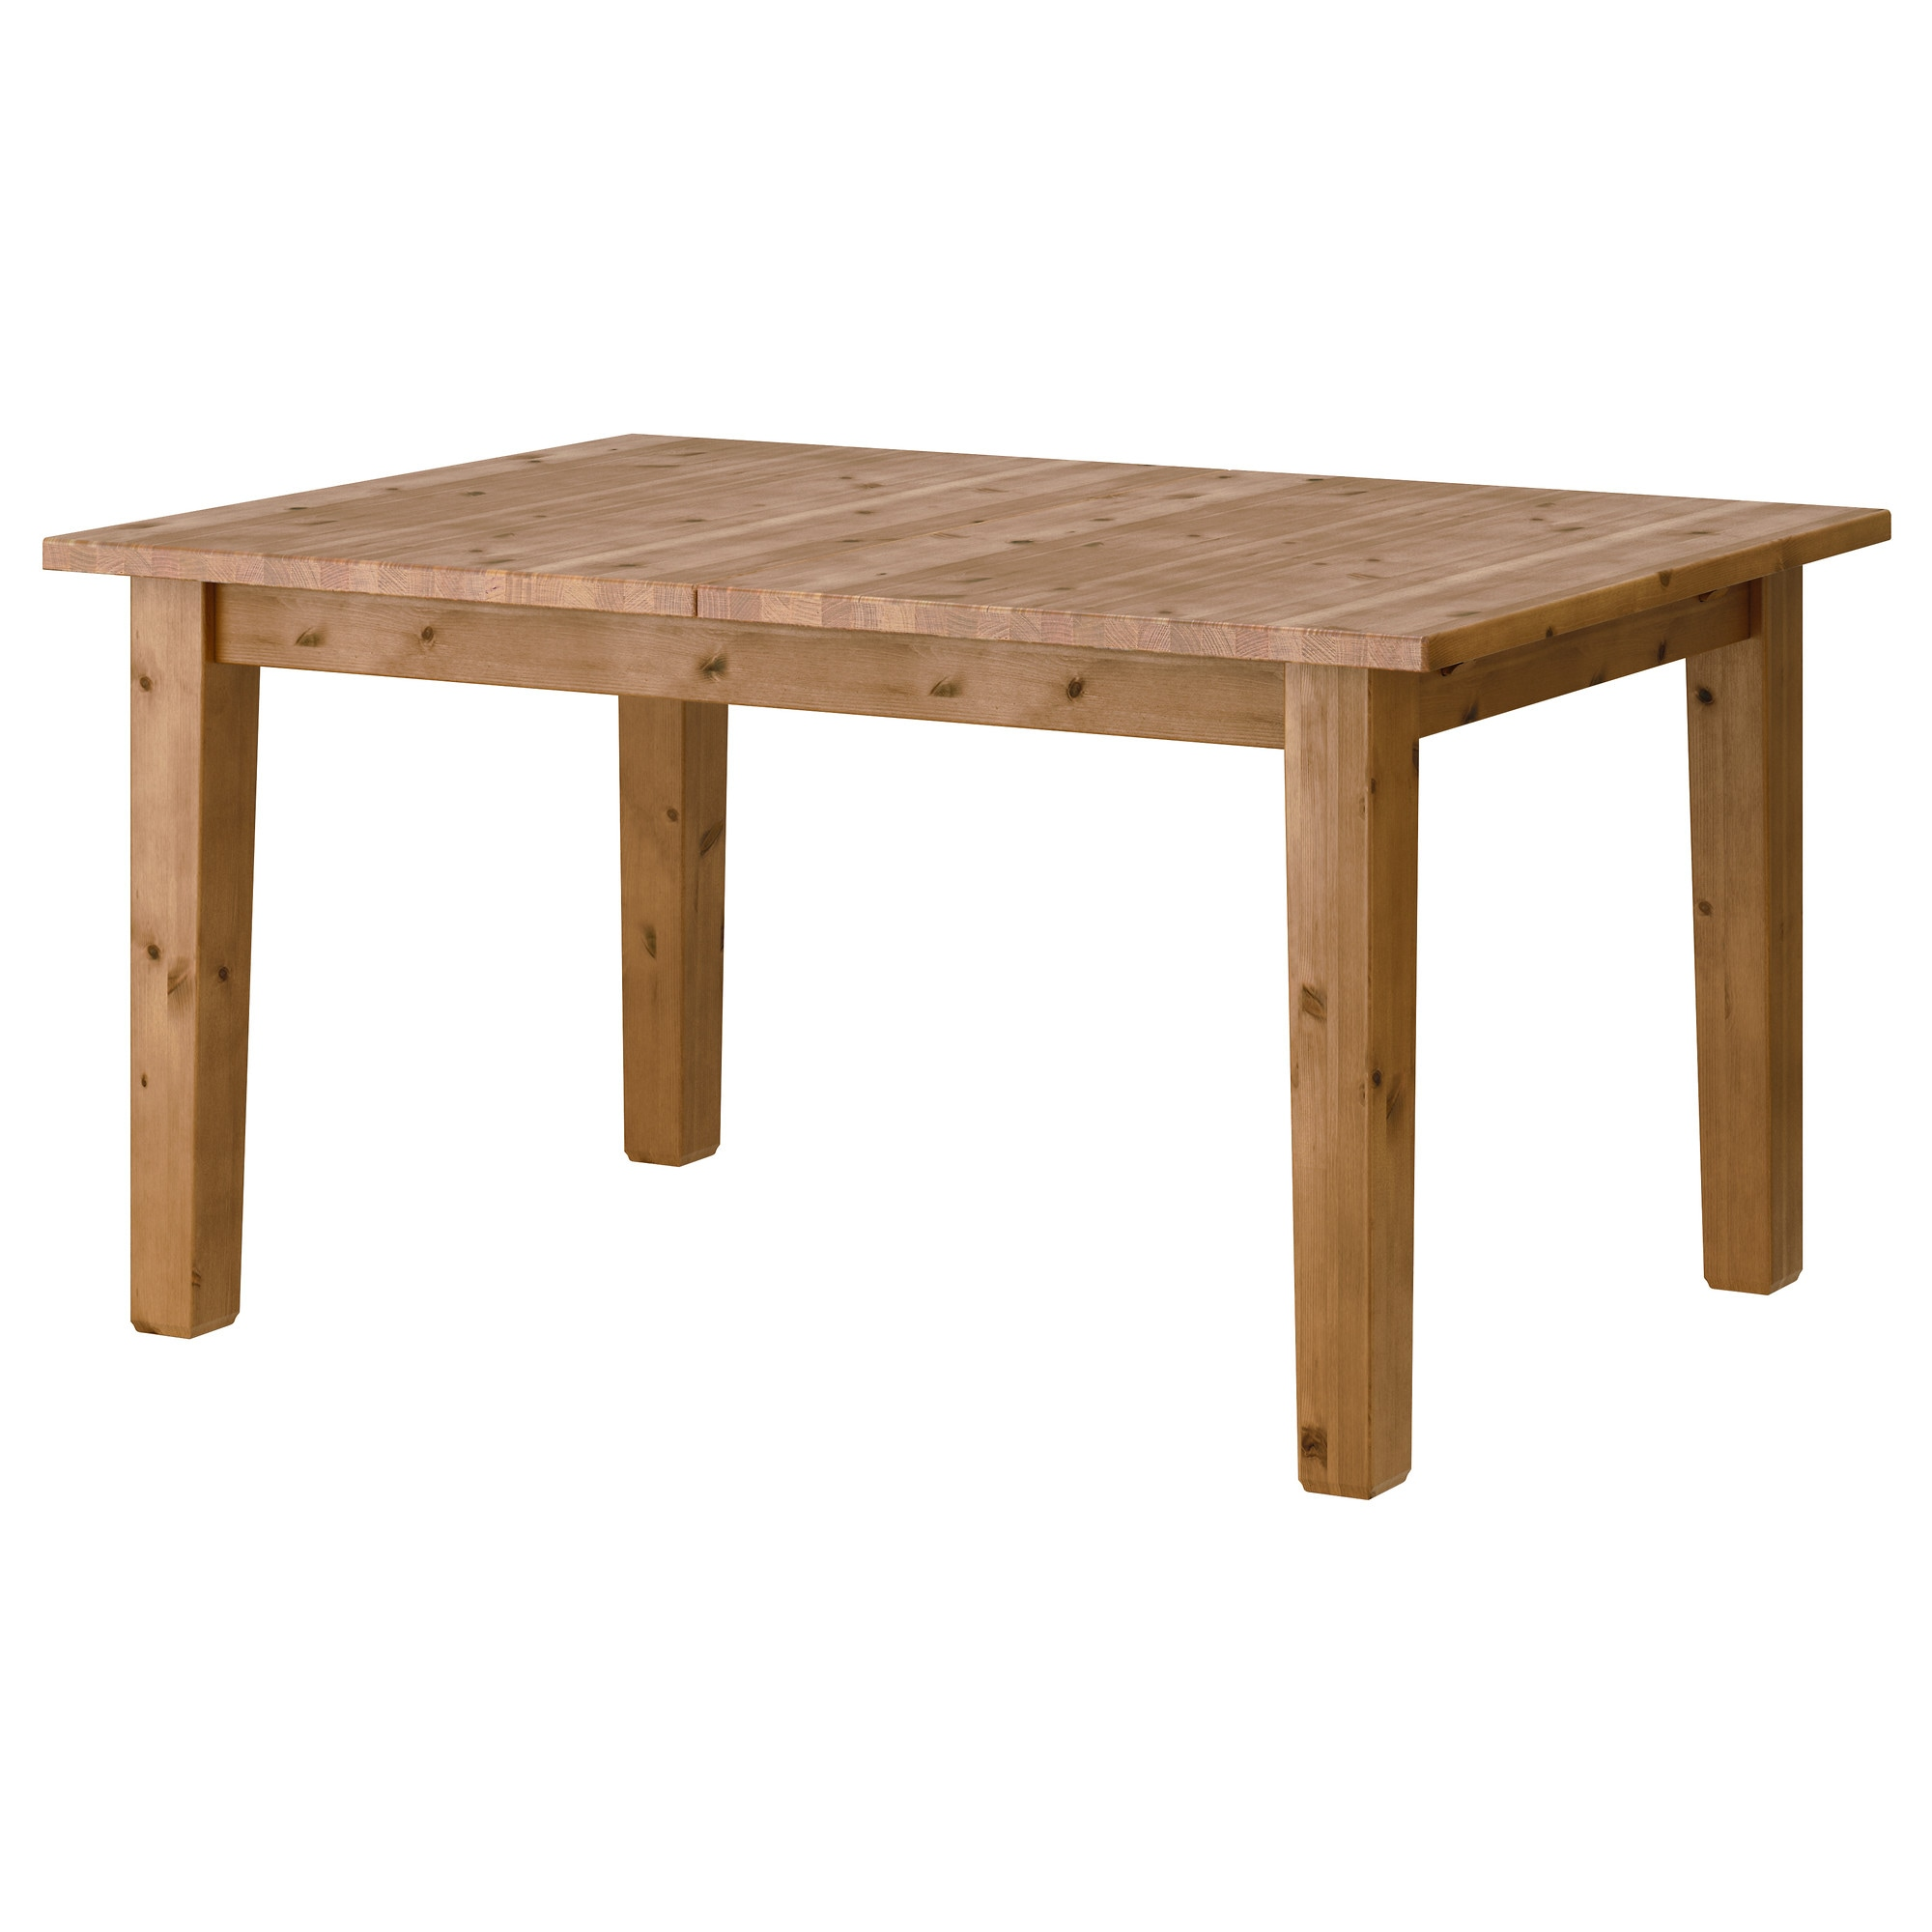 STORNS Extendable Table